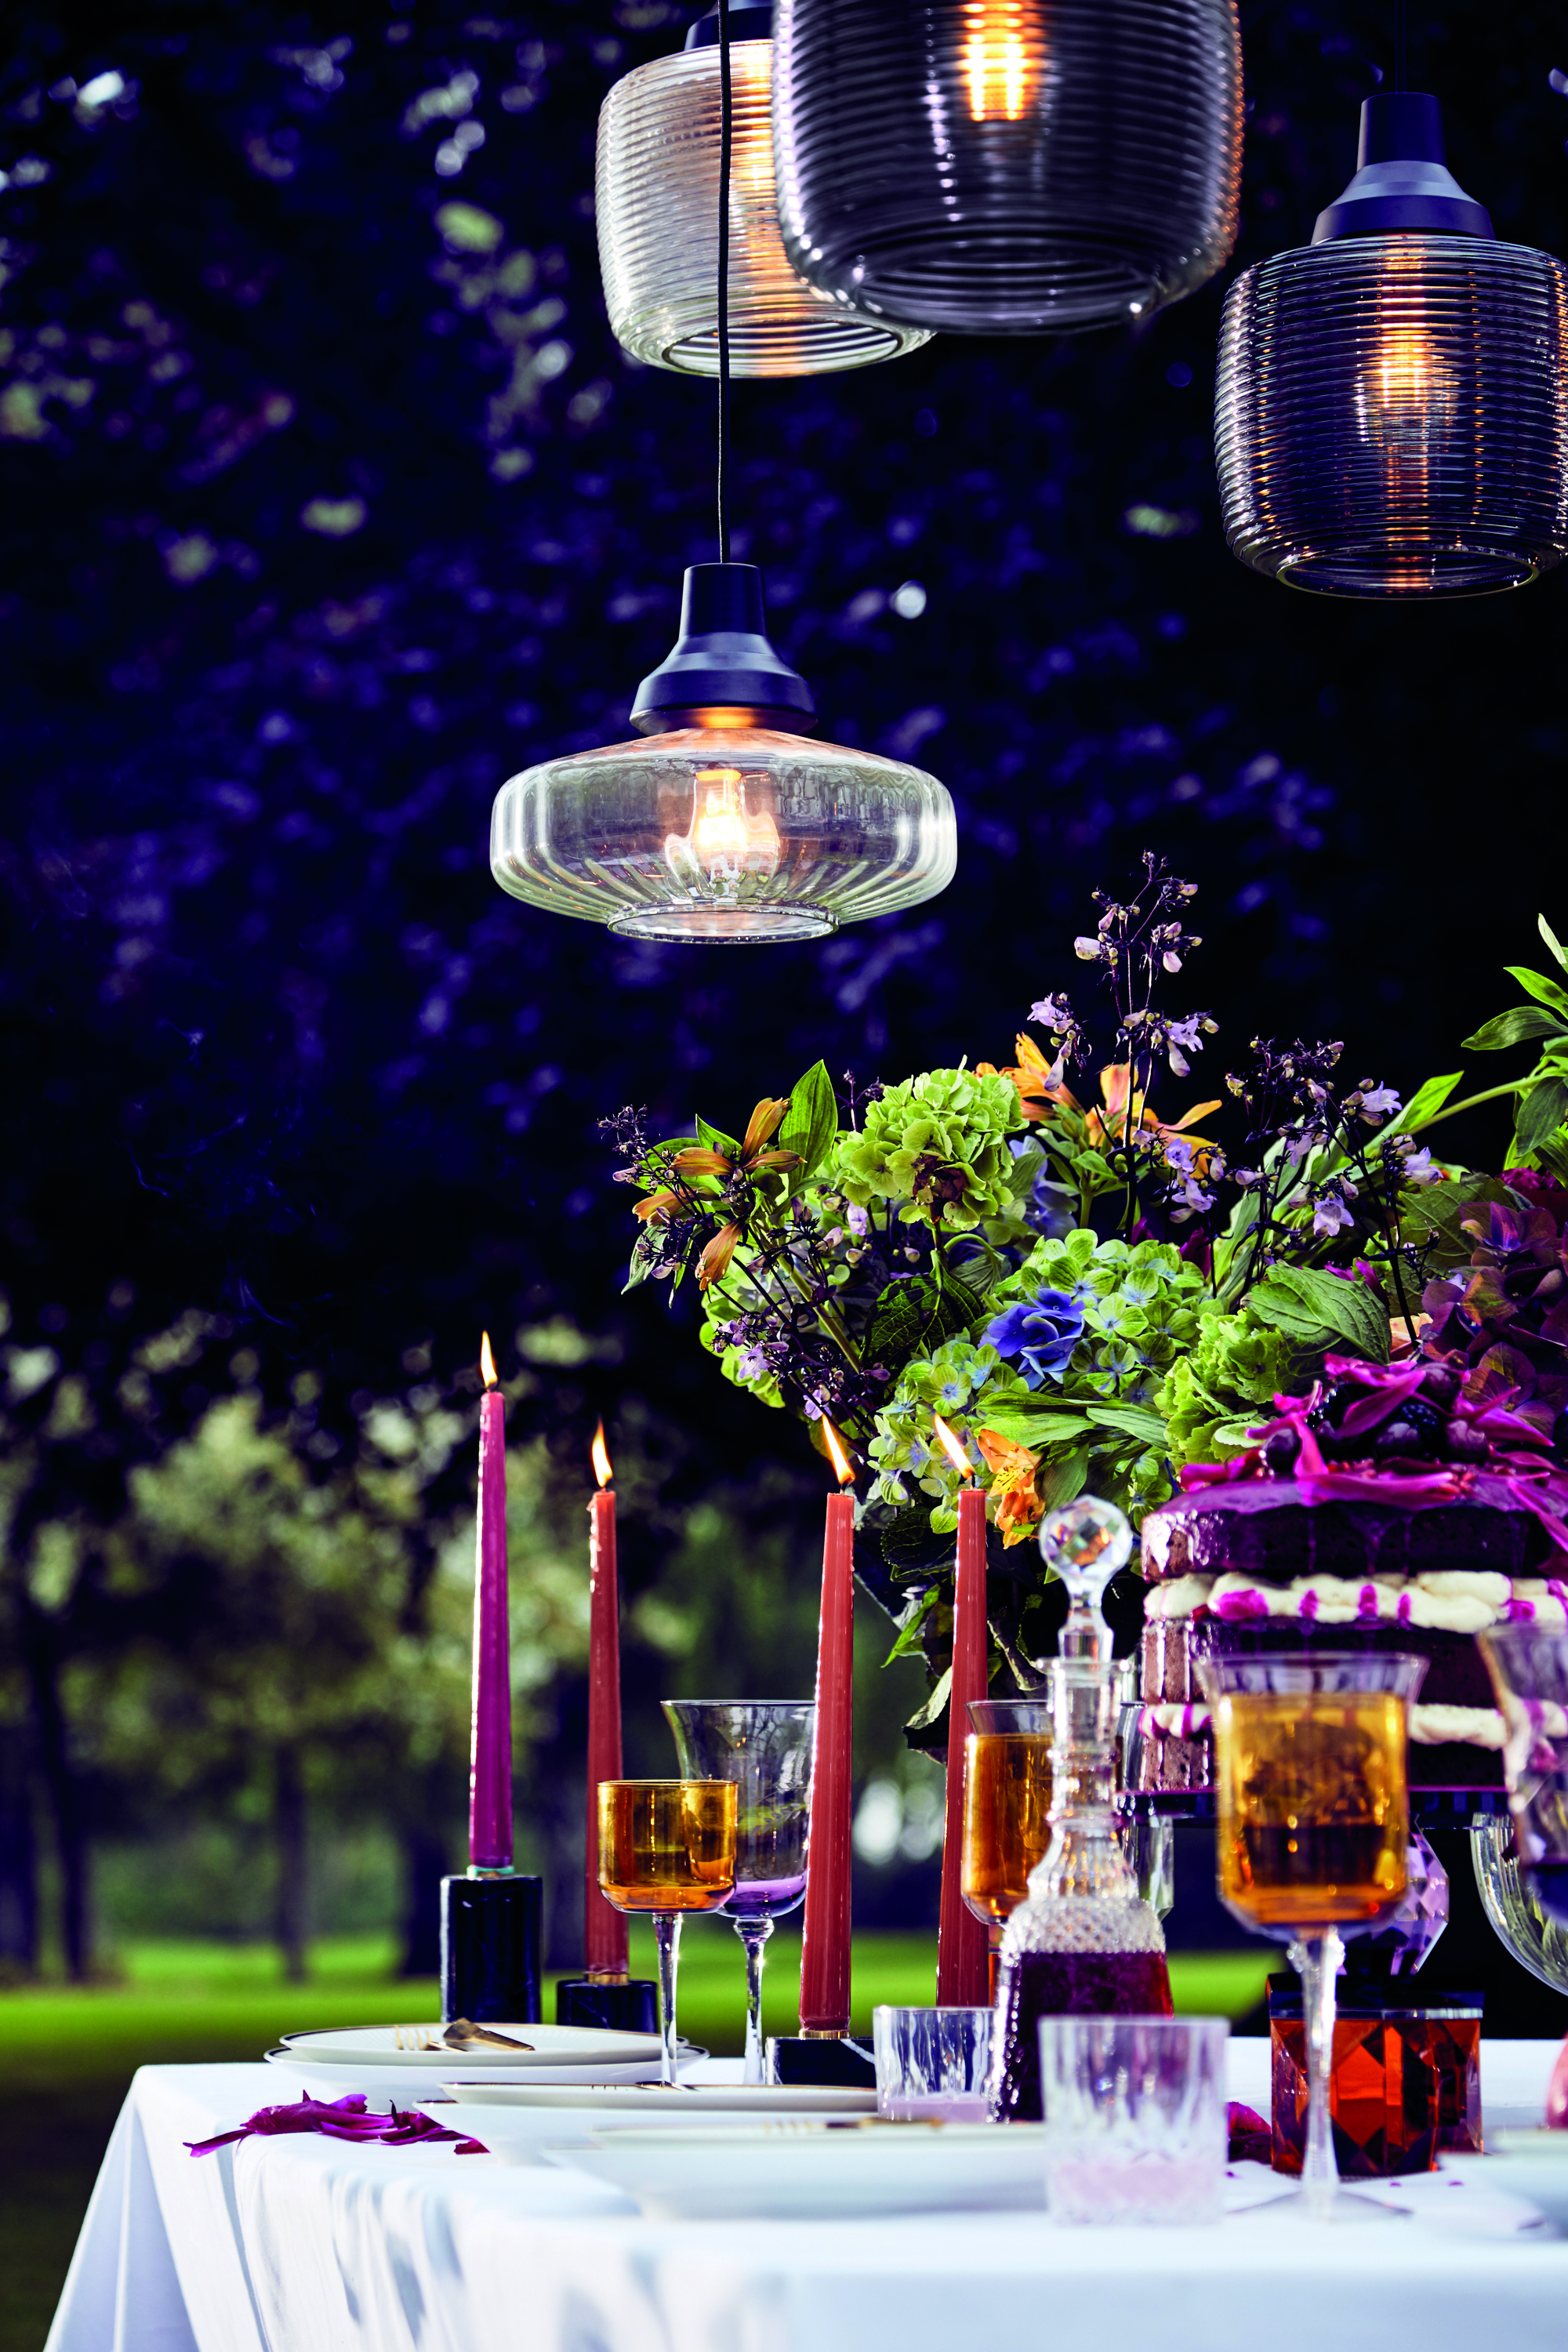 Marie-Burgos-Design.New-Wave-Optic.Garden-Party.MBcollection.jpg